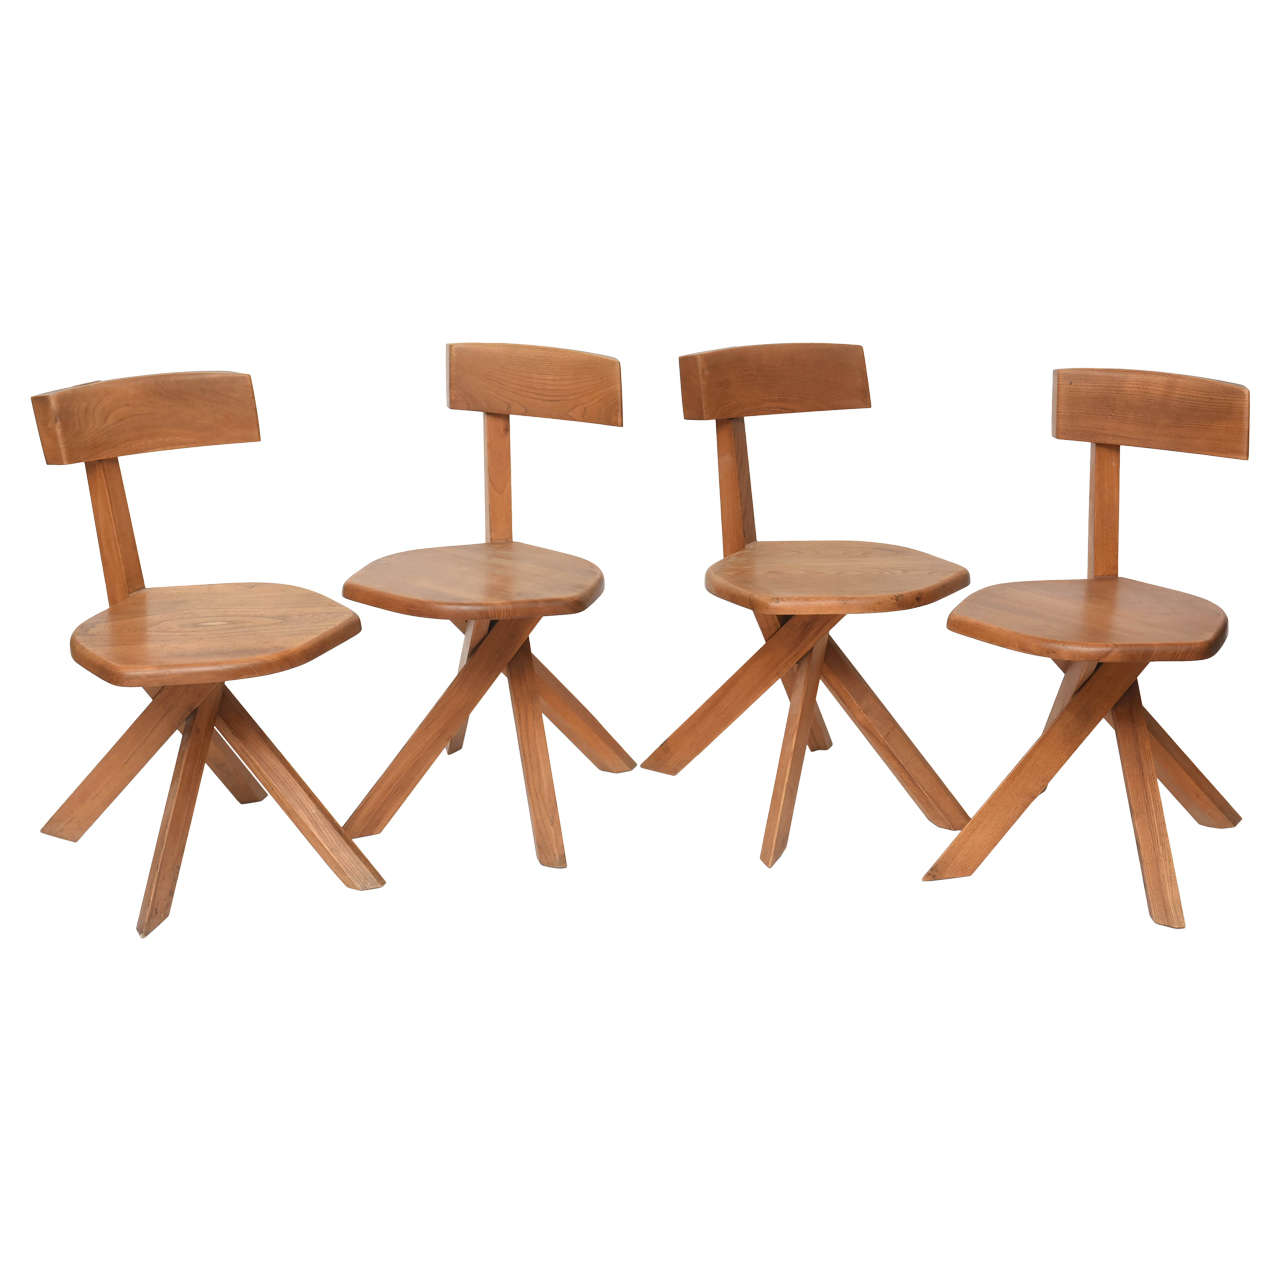 Set of Four Unusual French Modern Oak Chairs, Pierre Chapo